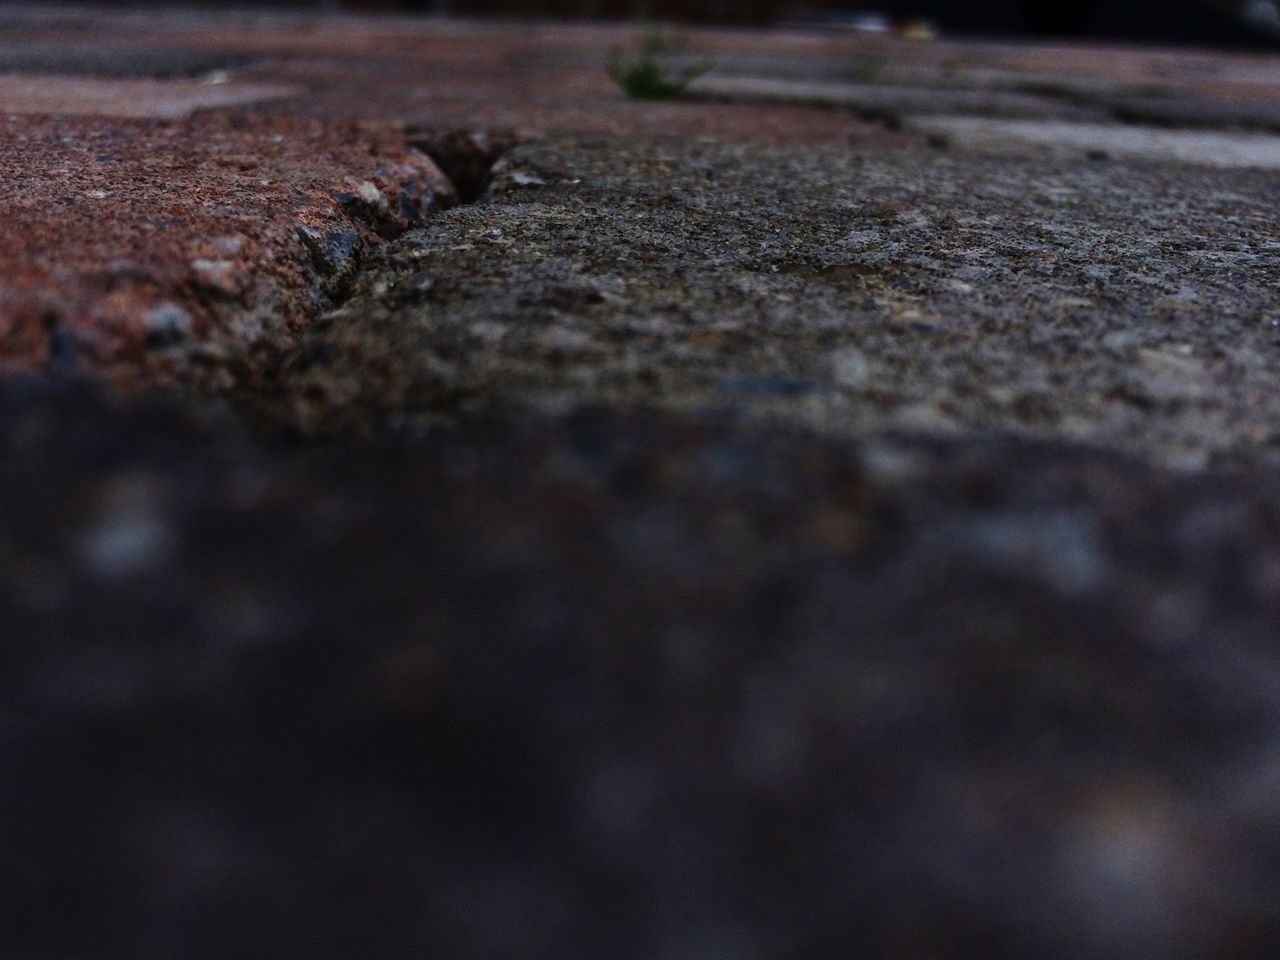 selective focus, surface level, day, no people, textured, outdoors, nature, close-up